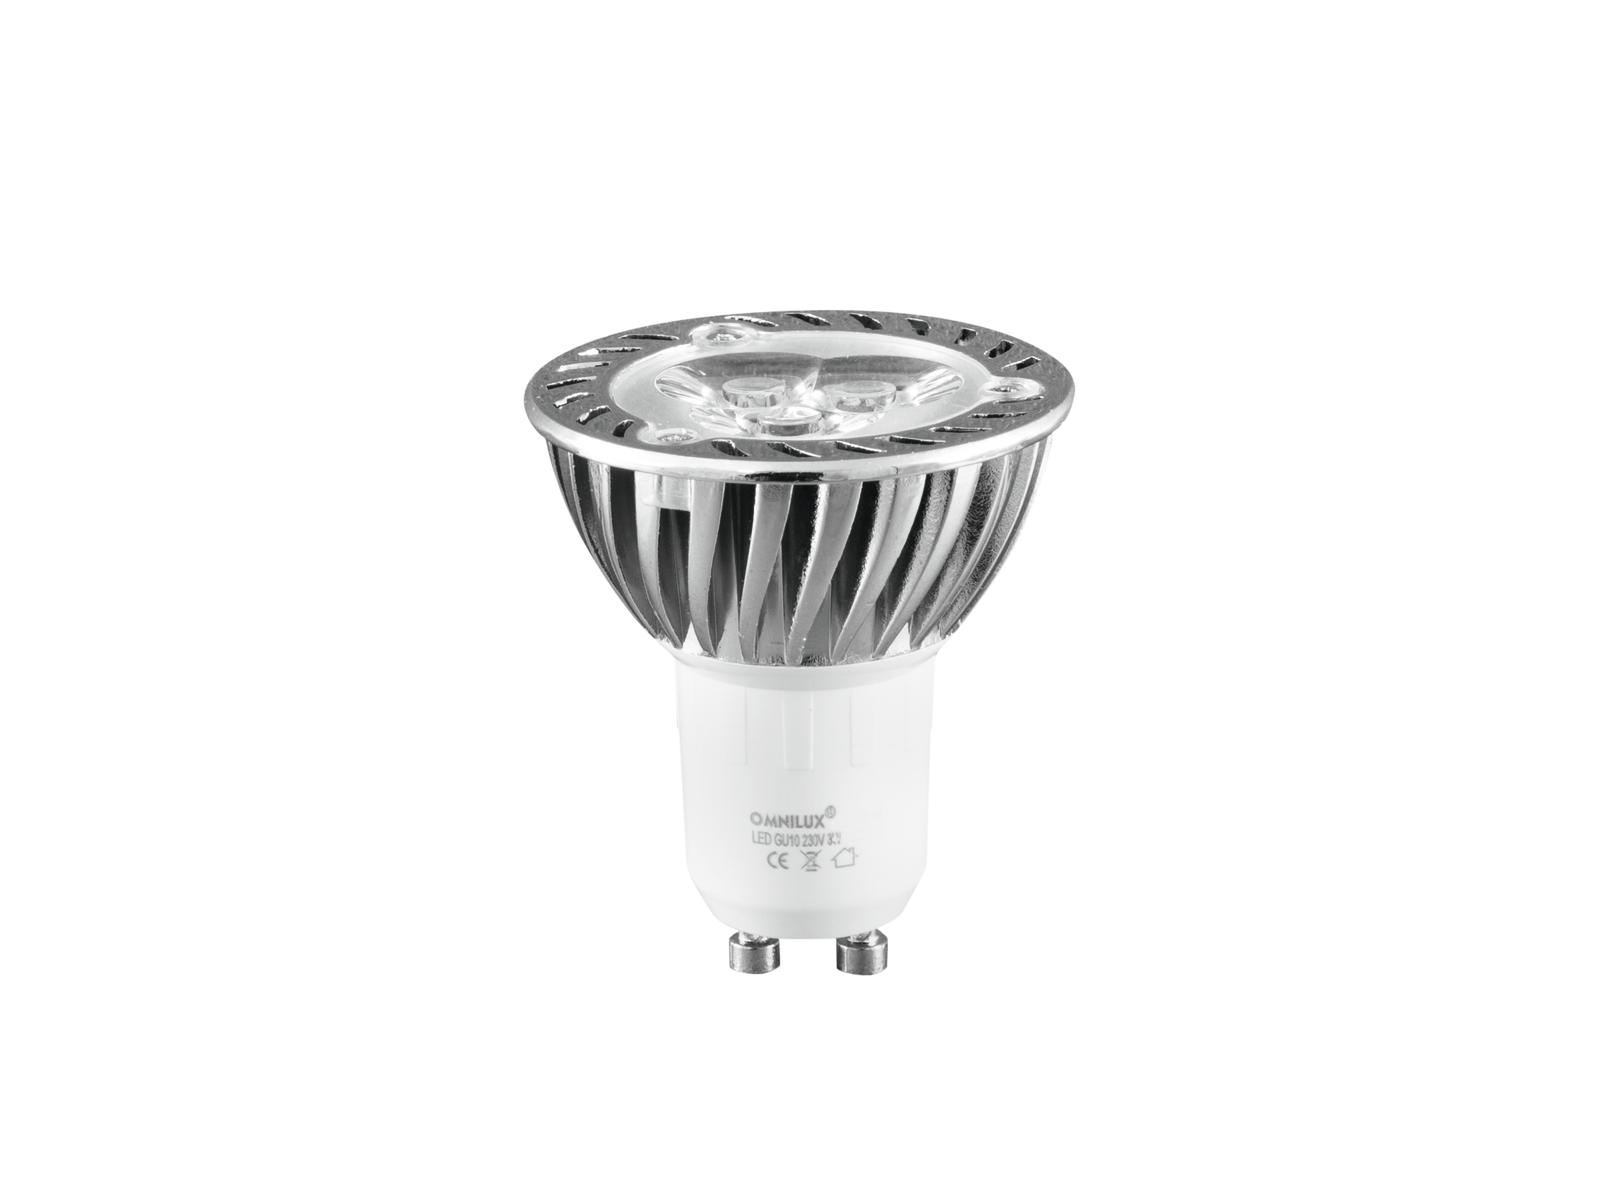 OMNILUX GU-10 230V 3x1W LED yellow